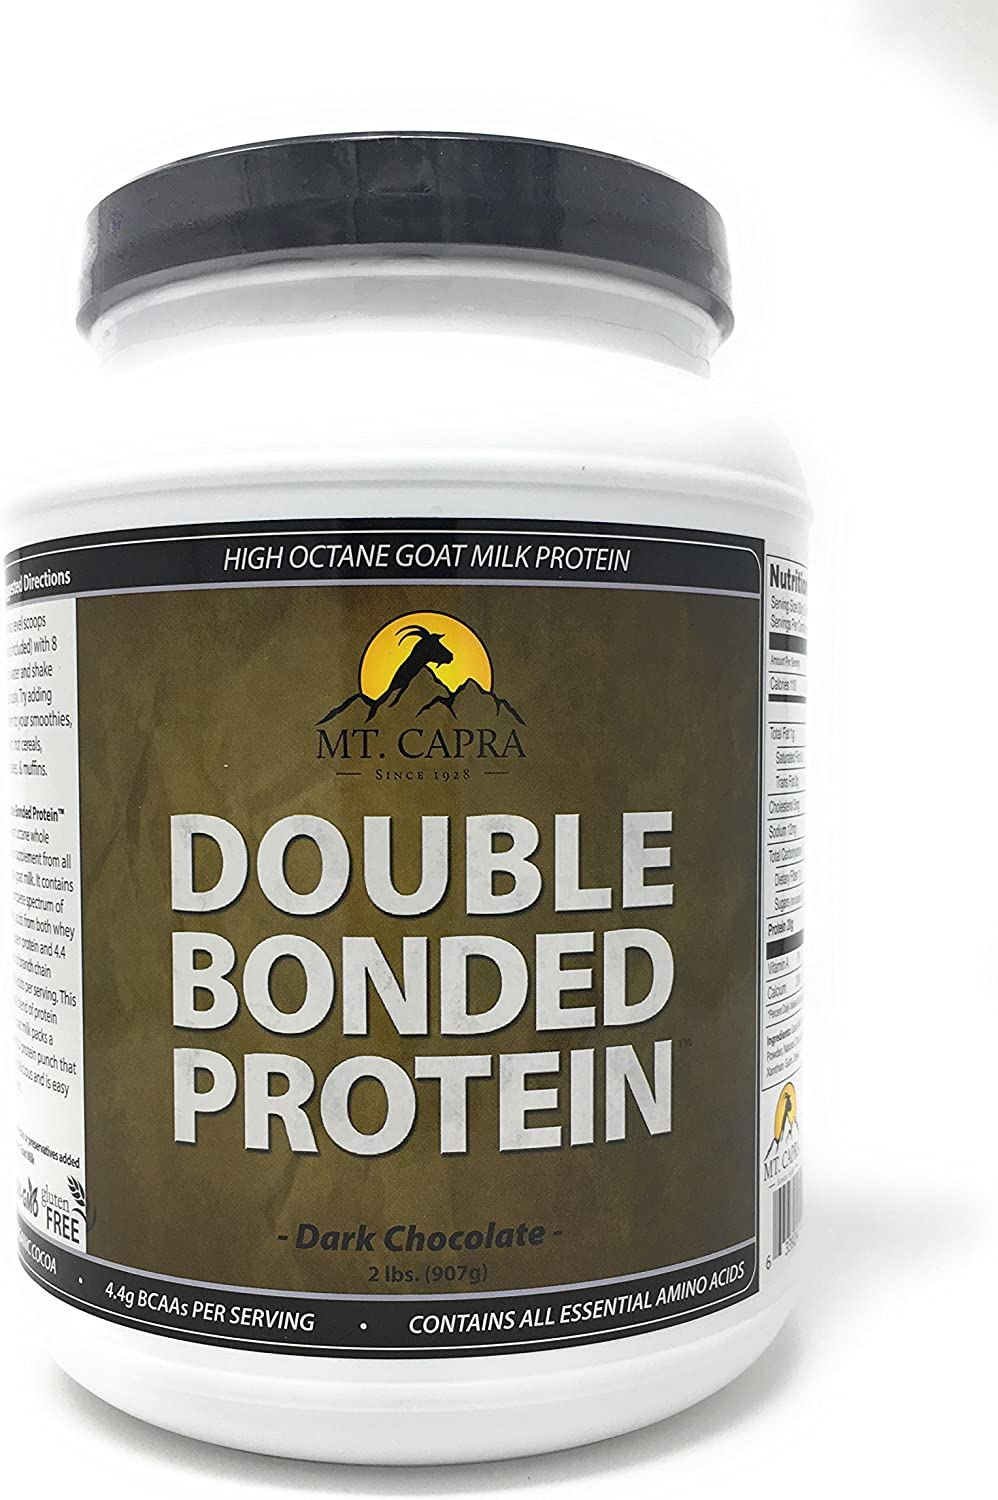 MT. CAPRA SINCE 1928 Double Bonded Protein Whole Goat Milk Protein with Natural Blend of Casein and Whey from Grass-fed Pastured Goats, Dark Chocolate Flavor – 2 Pounds